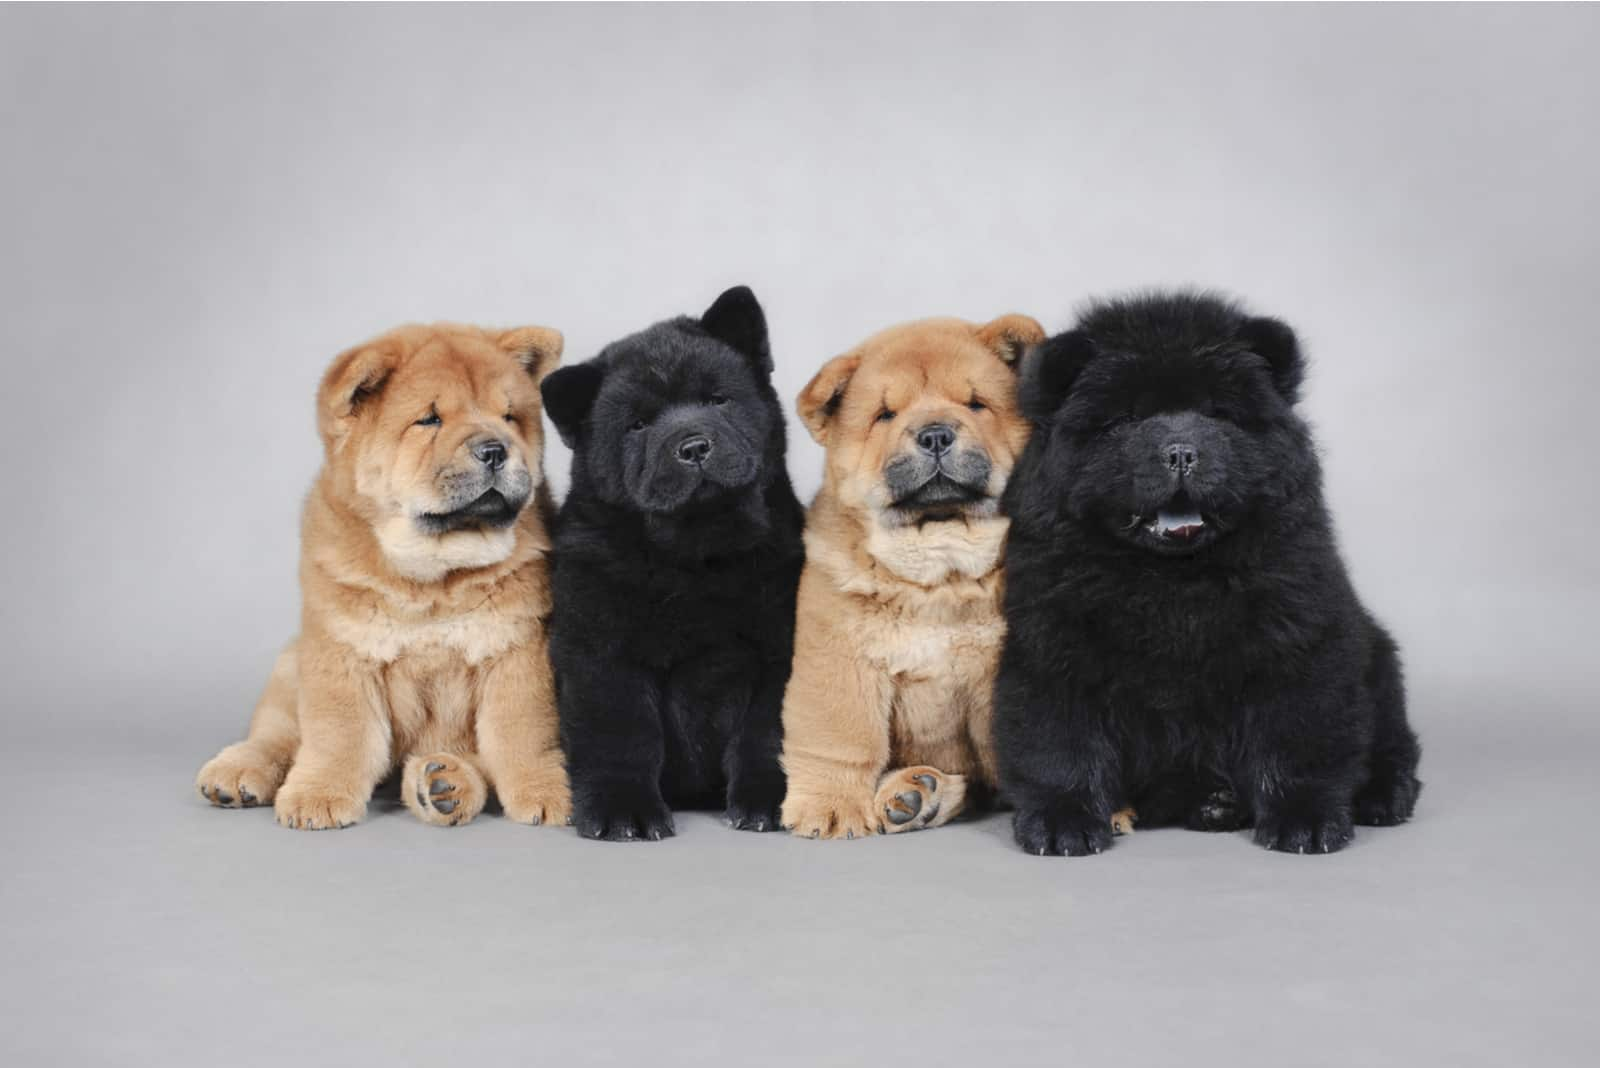 Four little Chow chow puppies